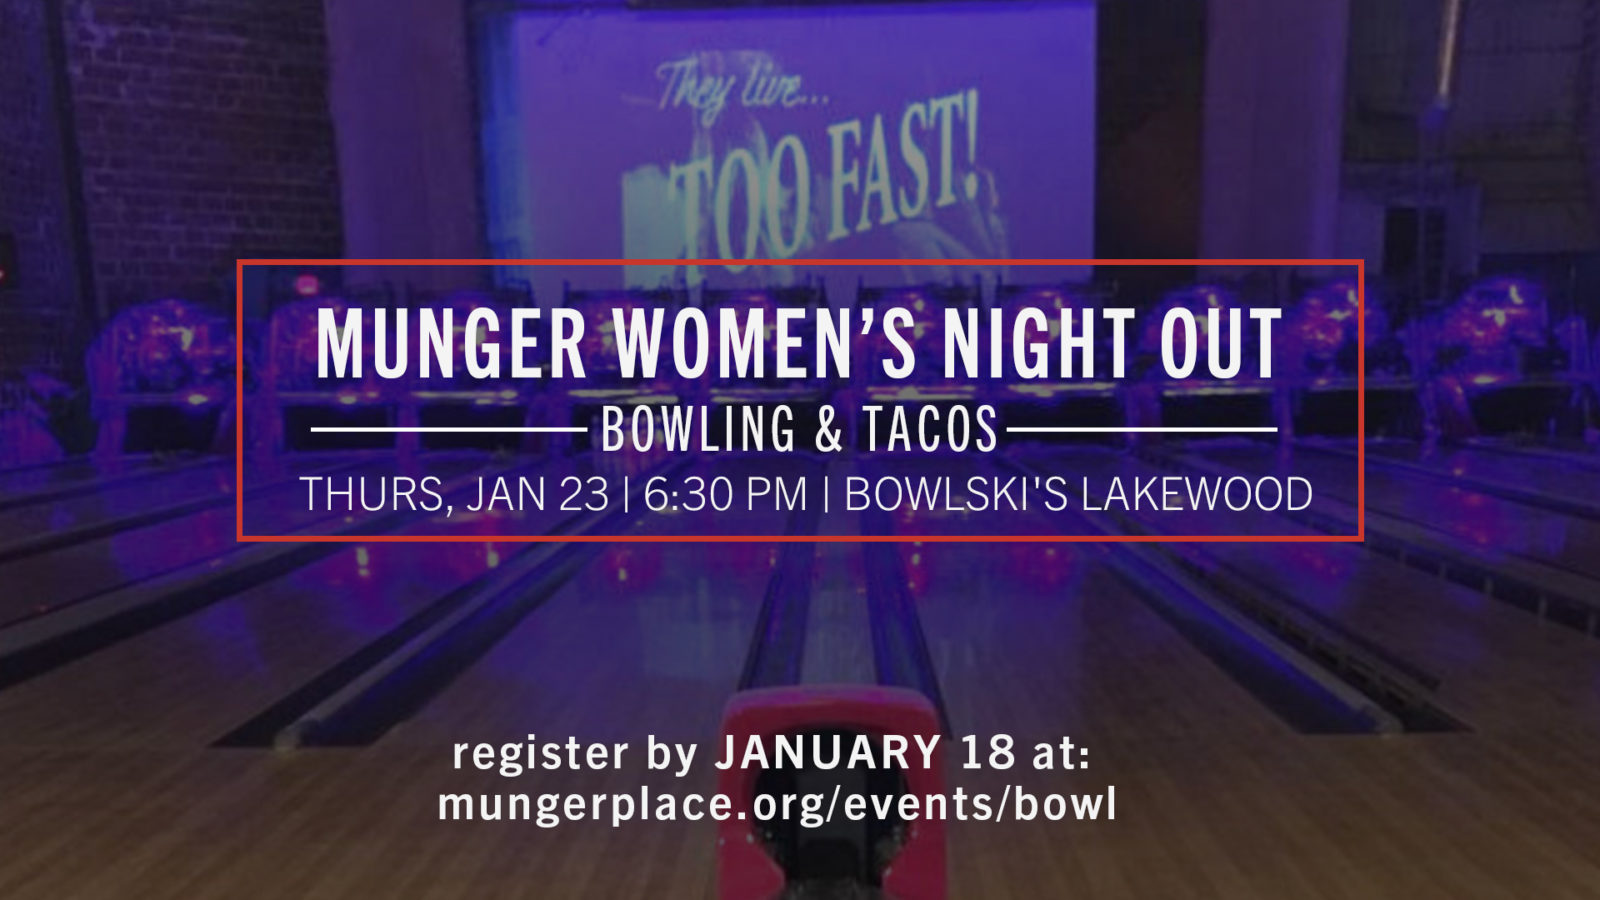 Women's Night Out: Bowling & Tacos